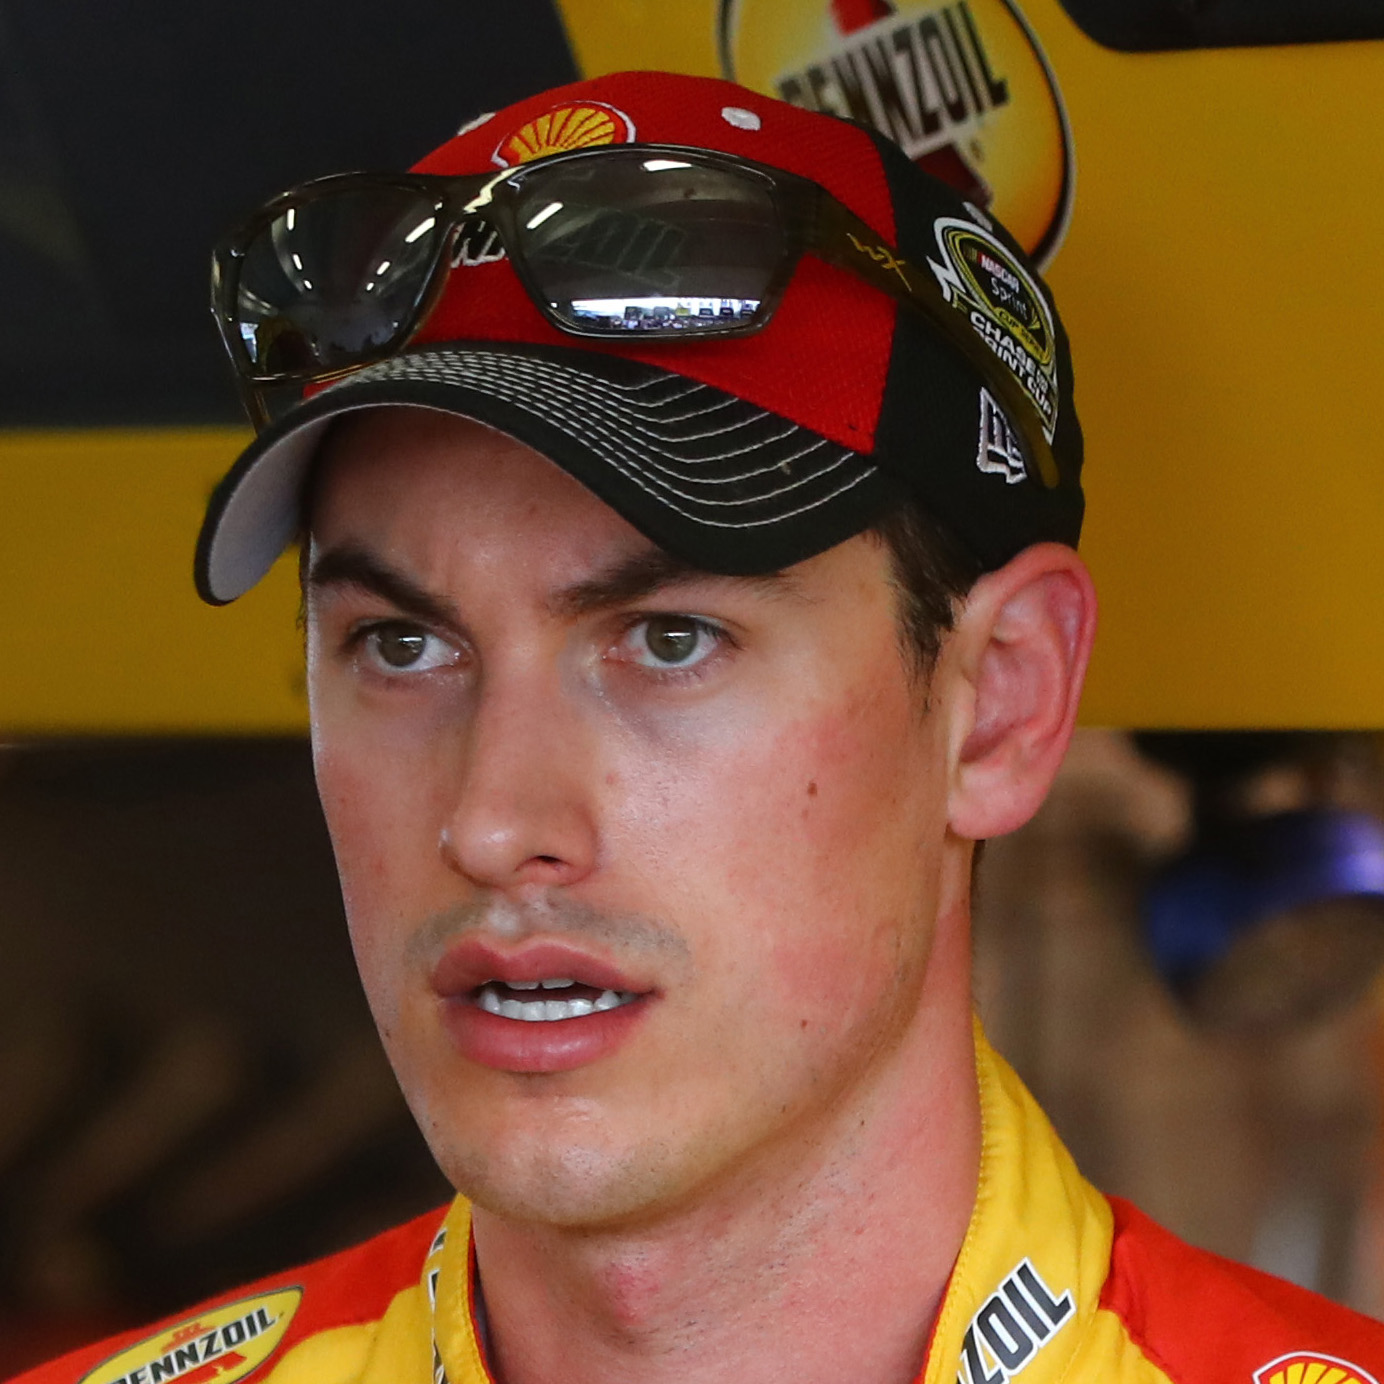 Joey Logano Headshot